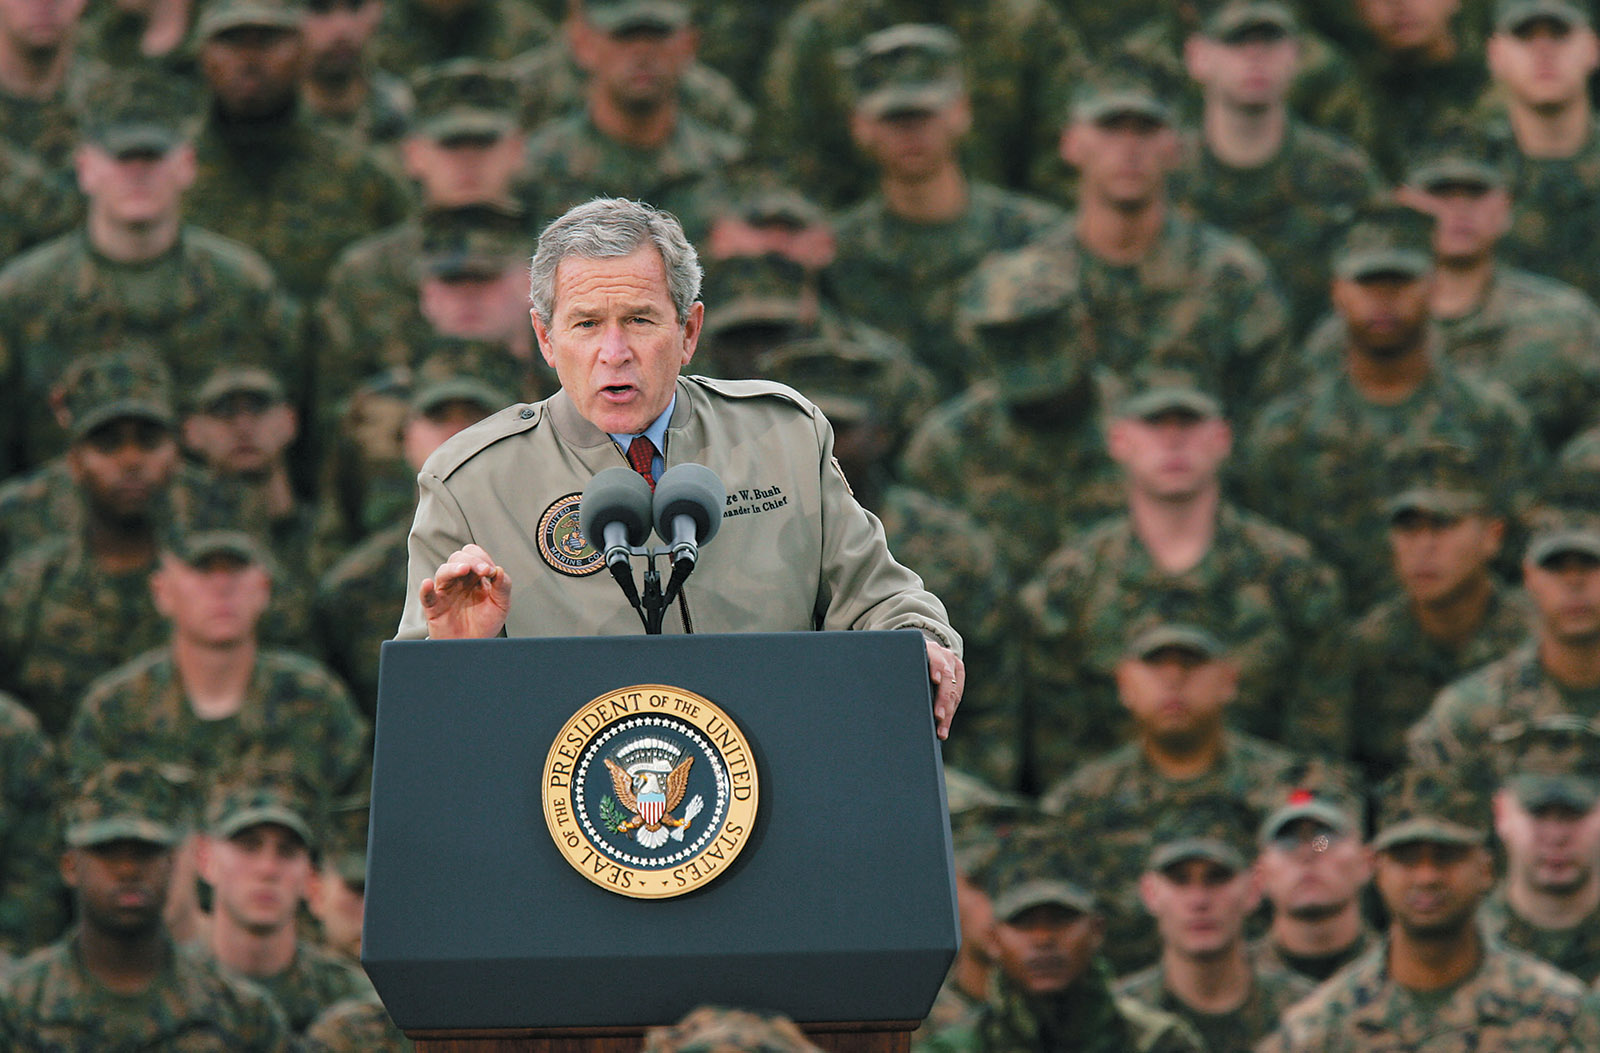 George W. Bush speaking to marines on the sixty-third anniversary of the Pearl Harbor attack, 2004